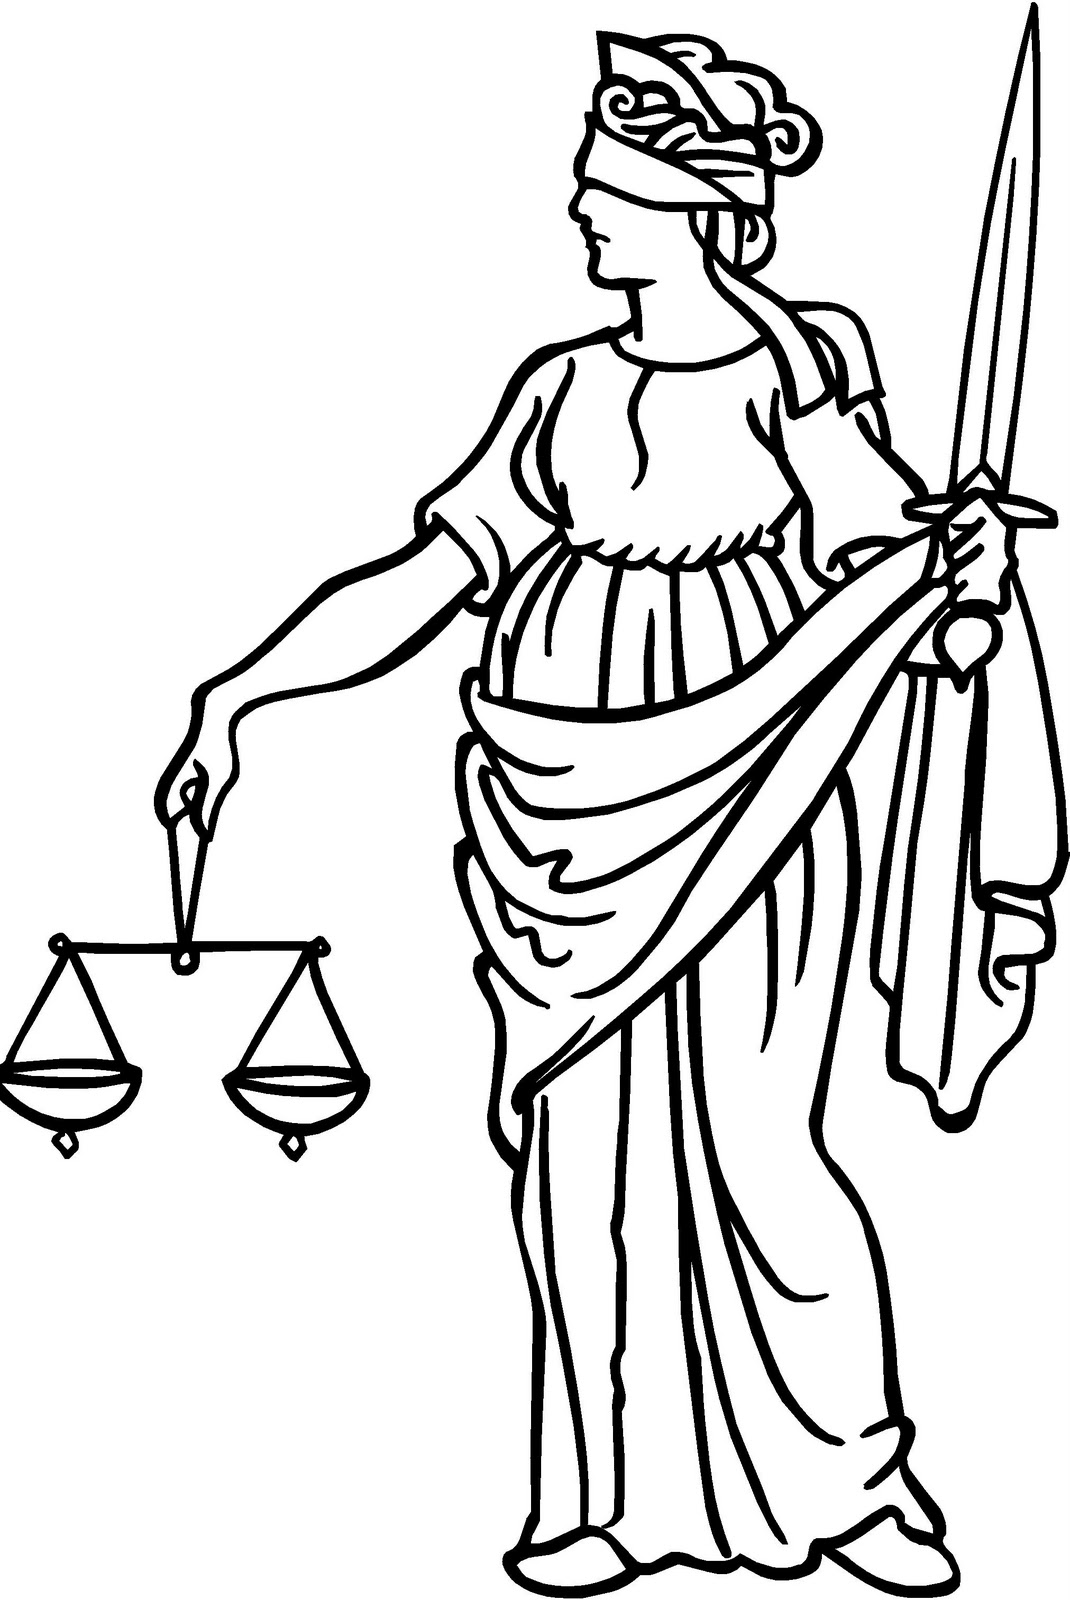 Laws clipart natural law. Hard cases for judges